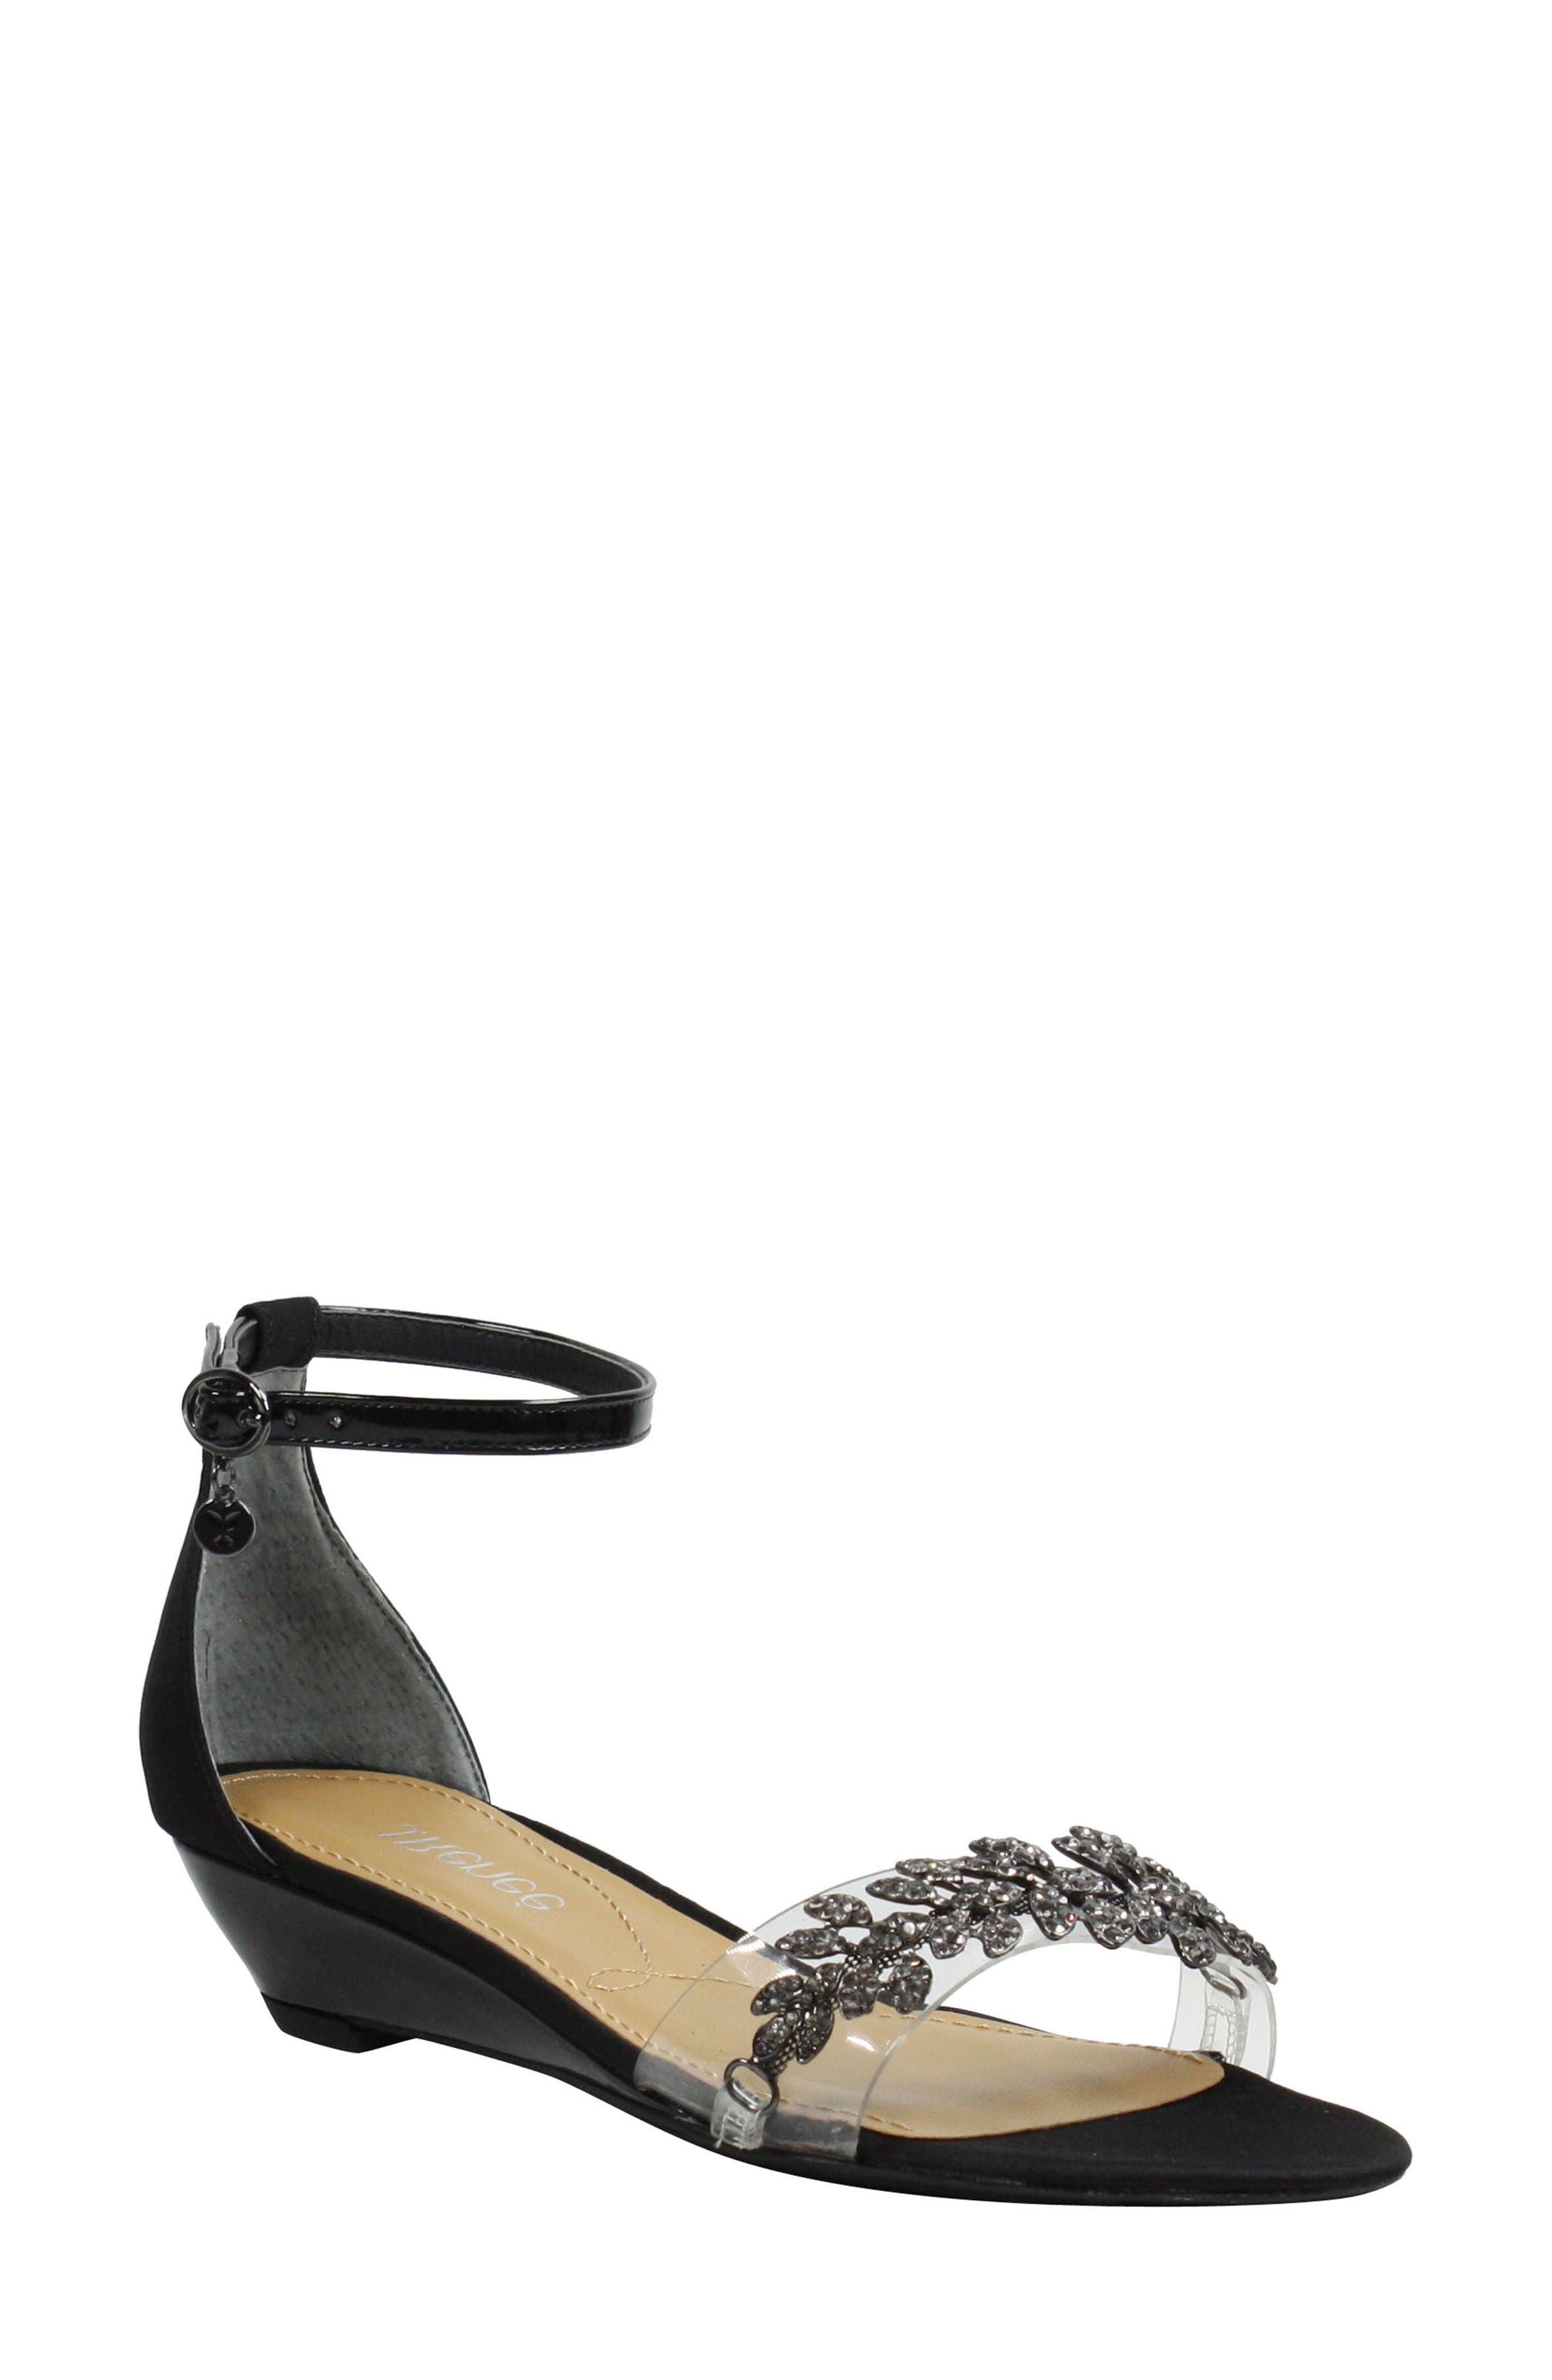 Evania Ankle Strap Sandal, Main, color, BLACK SATIN